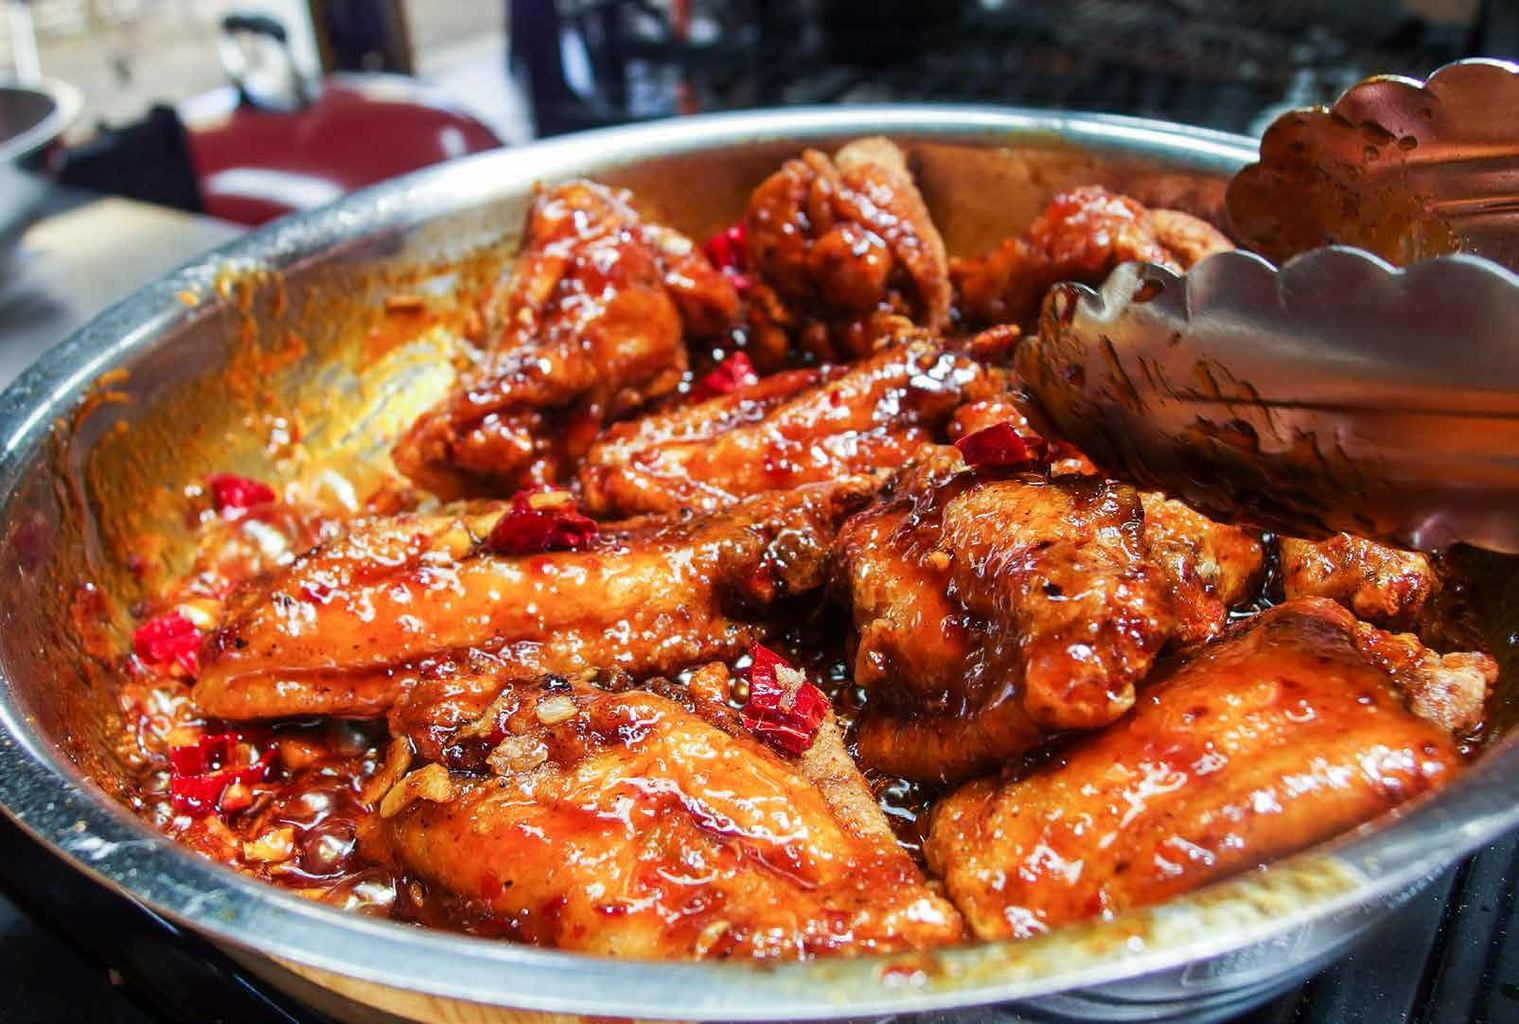 Dress the Chicken With the Glaze and Serve